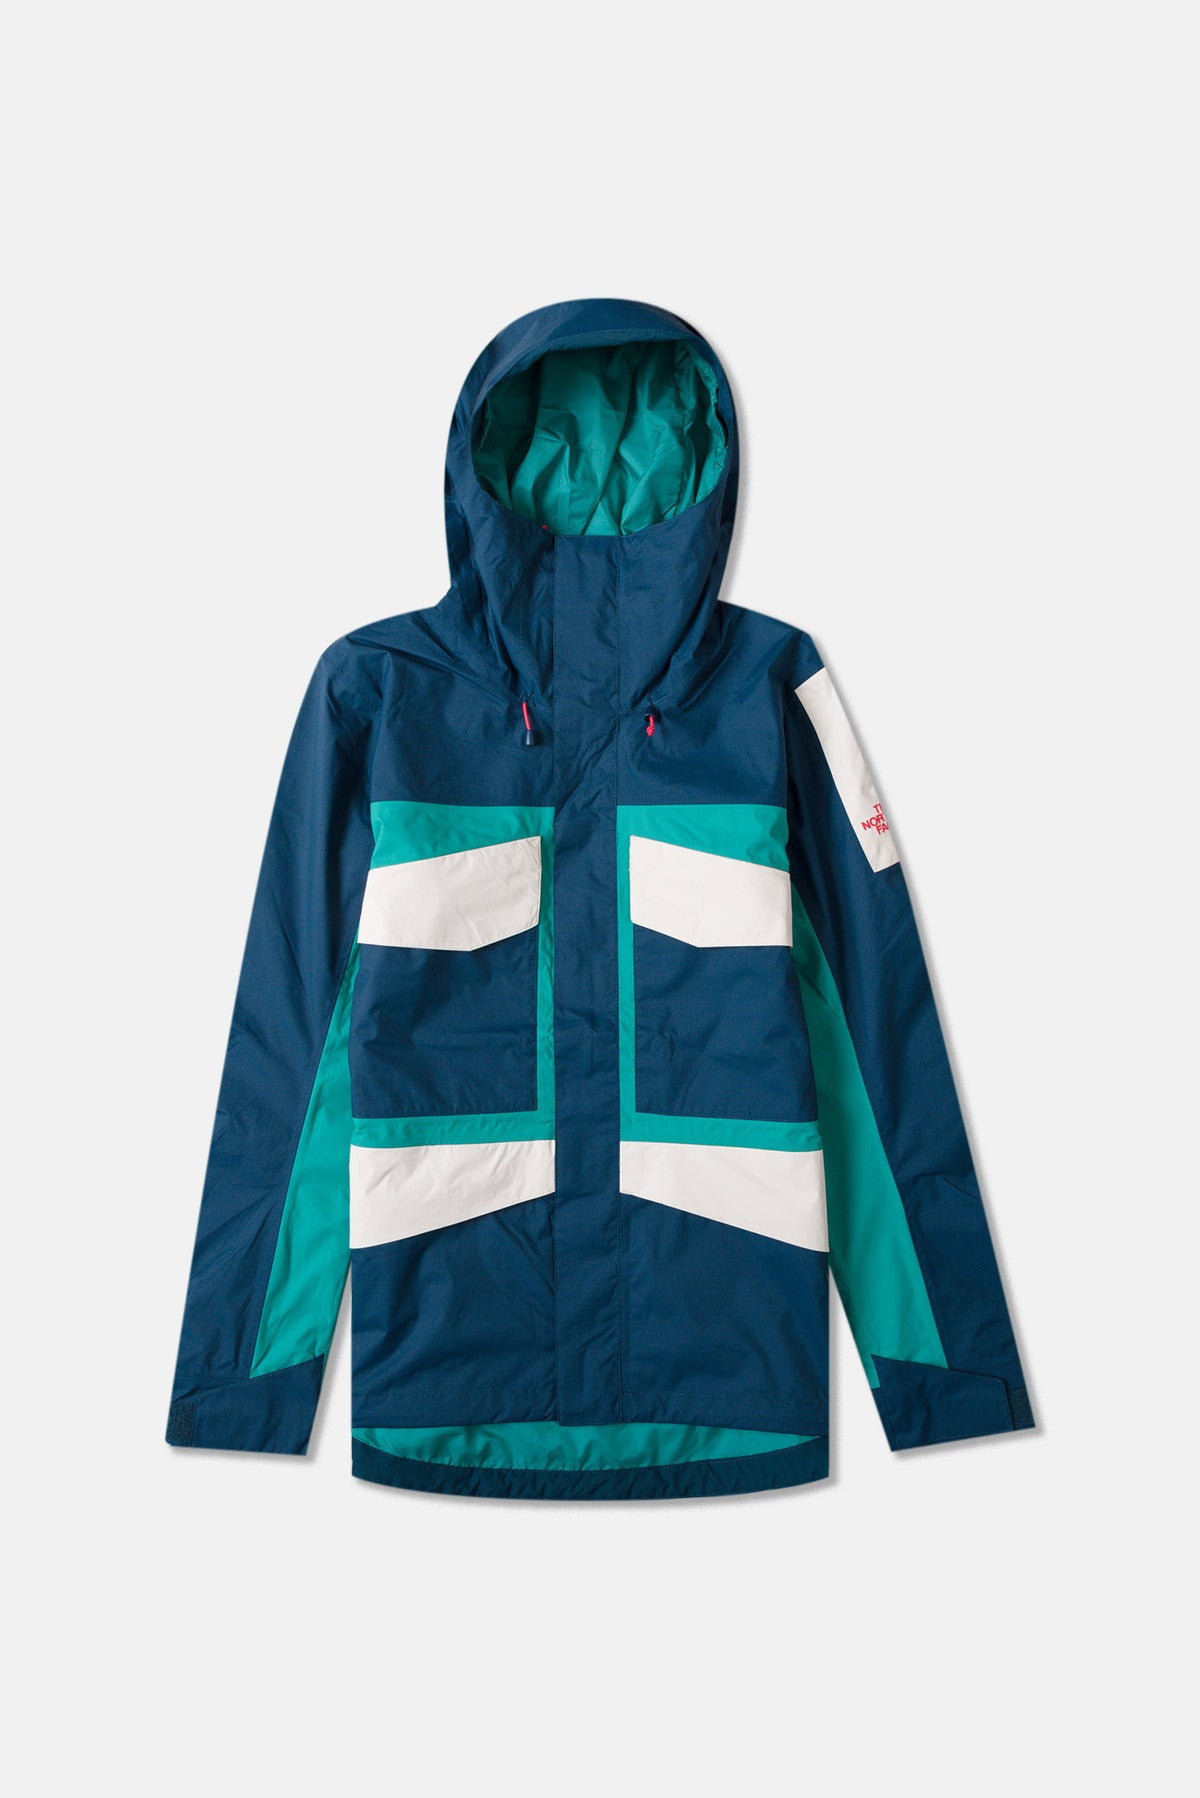 f1d5c9cd8b24 North Face Capsule Fantasy Ridge Jacket available from Priory